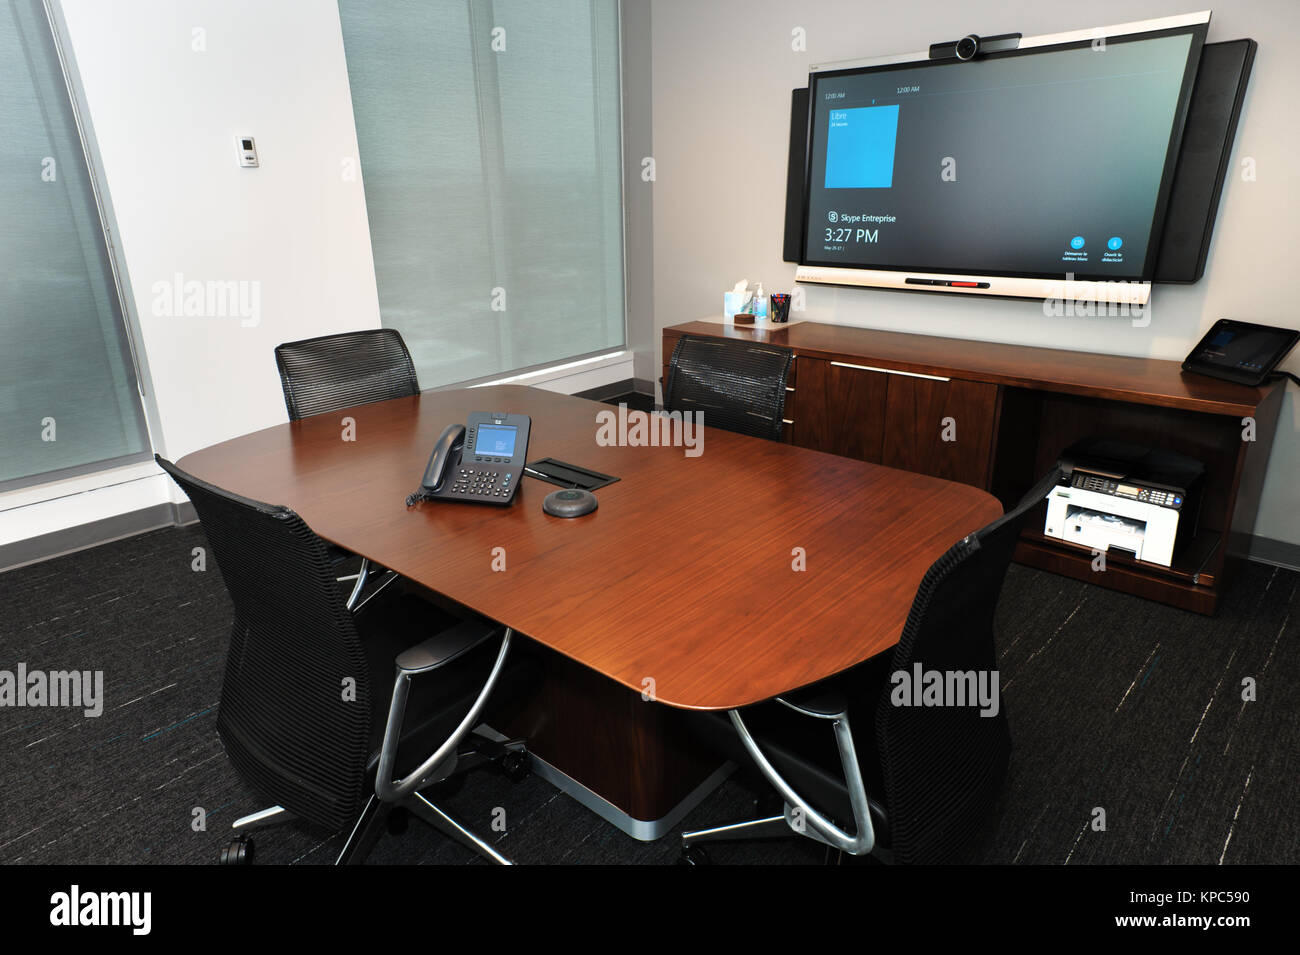 Meeting room of a modern corpporate office. - Stock Image